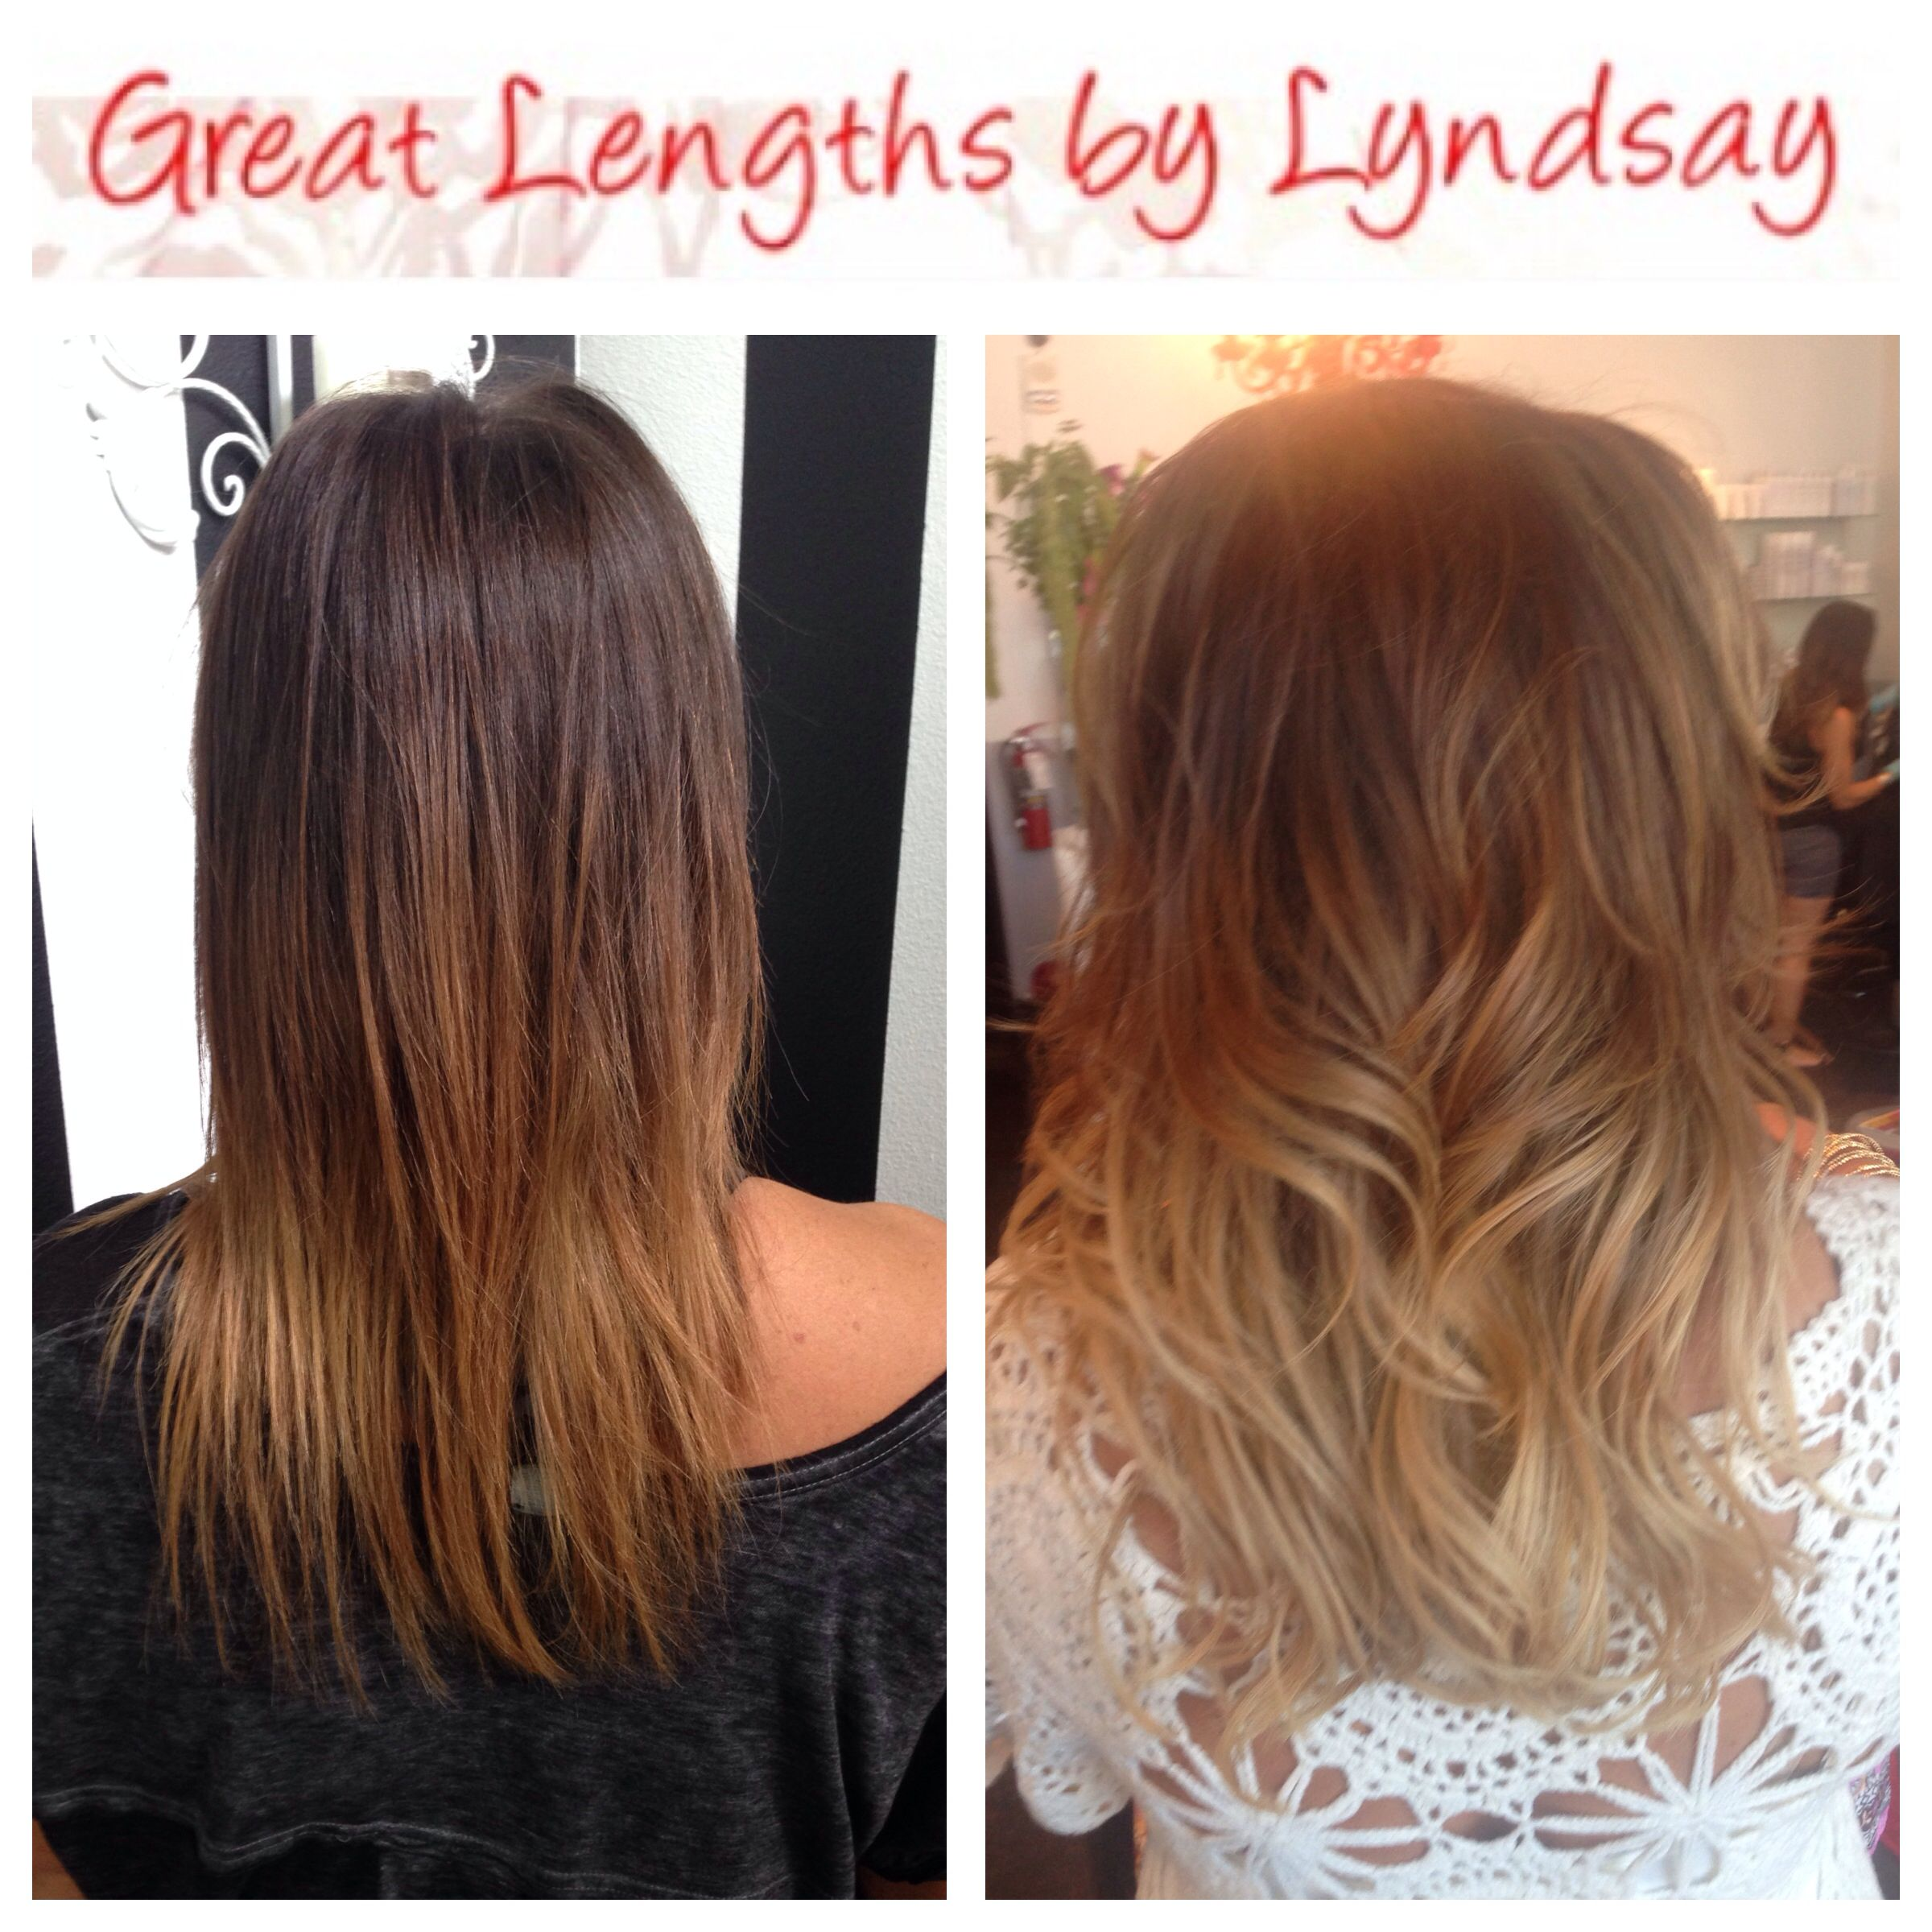 Great Lengths Hair Extensions Creating Dramatic Volume Sombre By Lyndsay Maderis